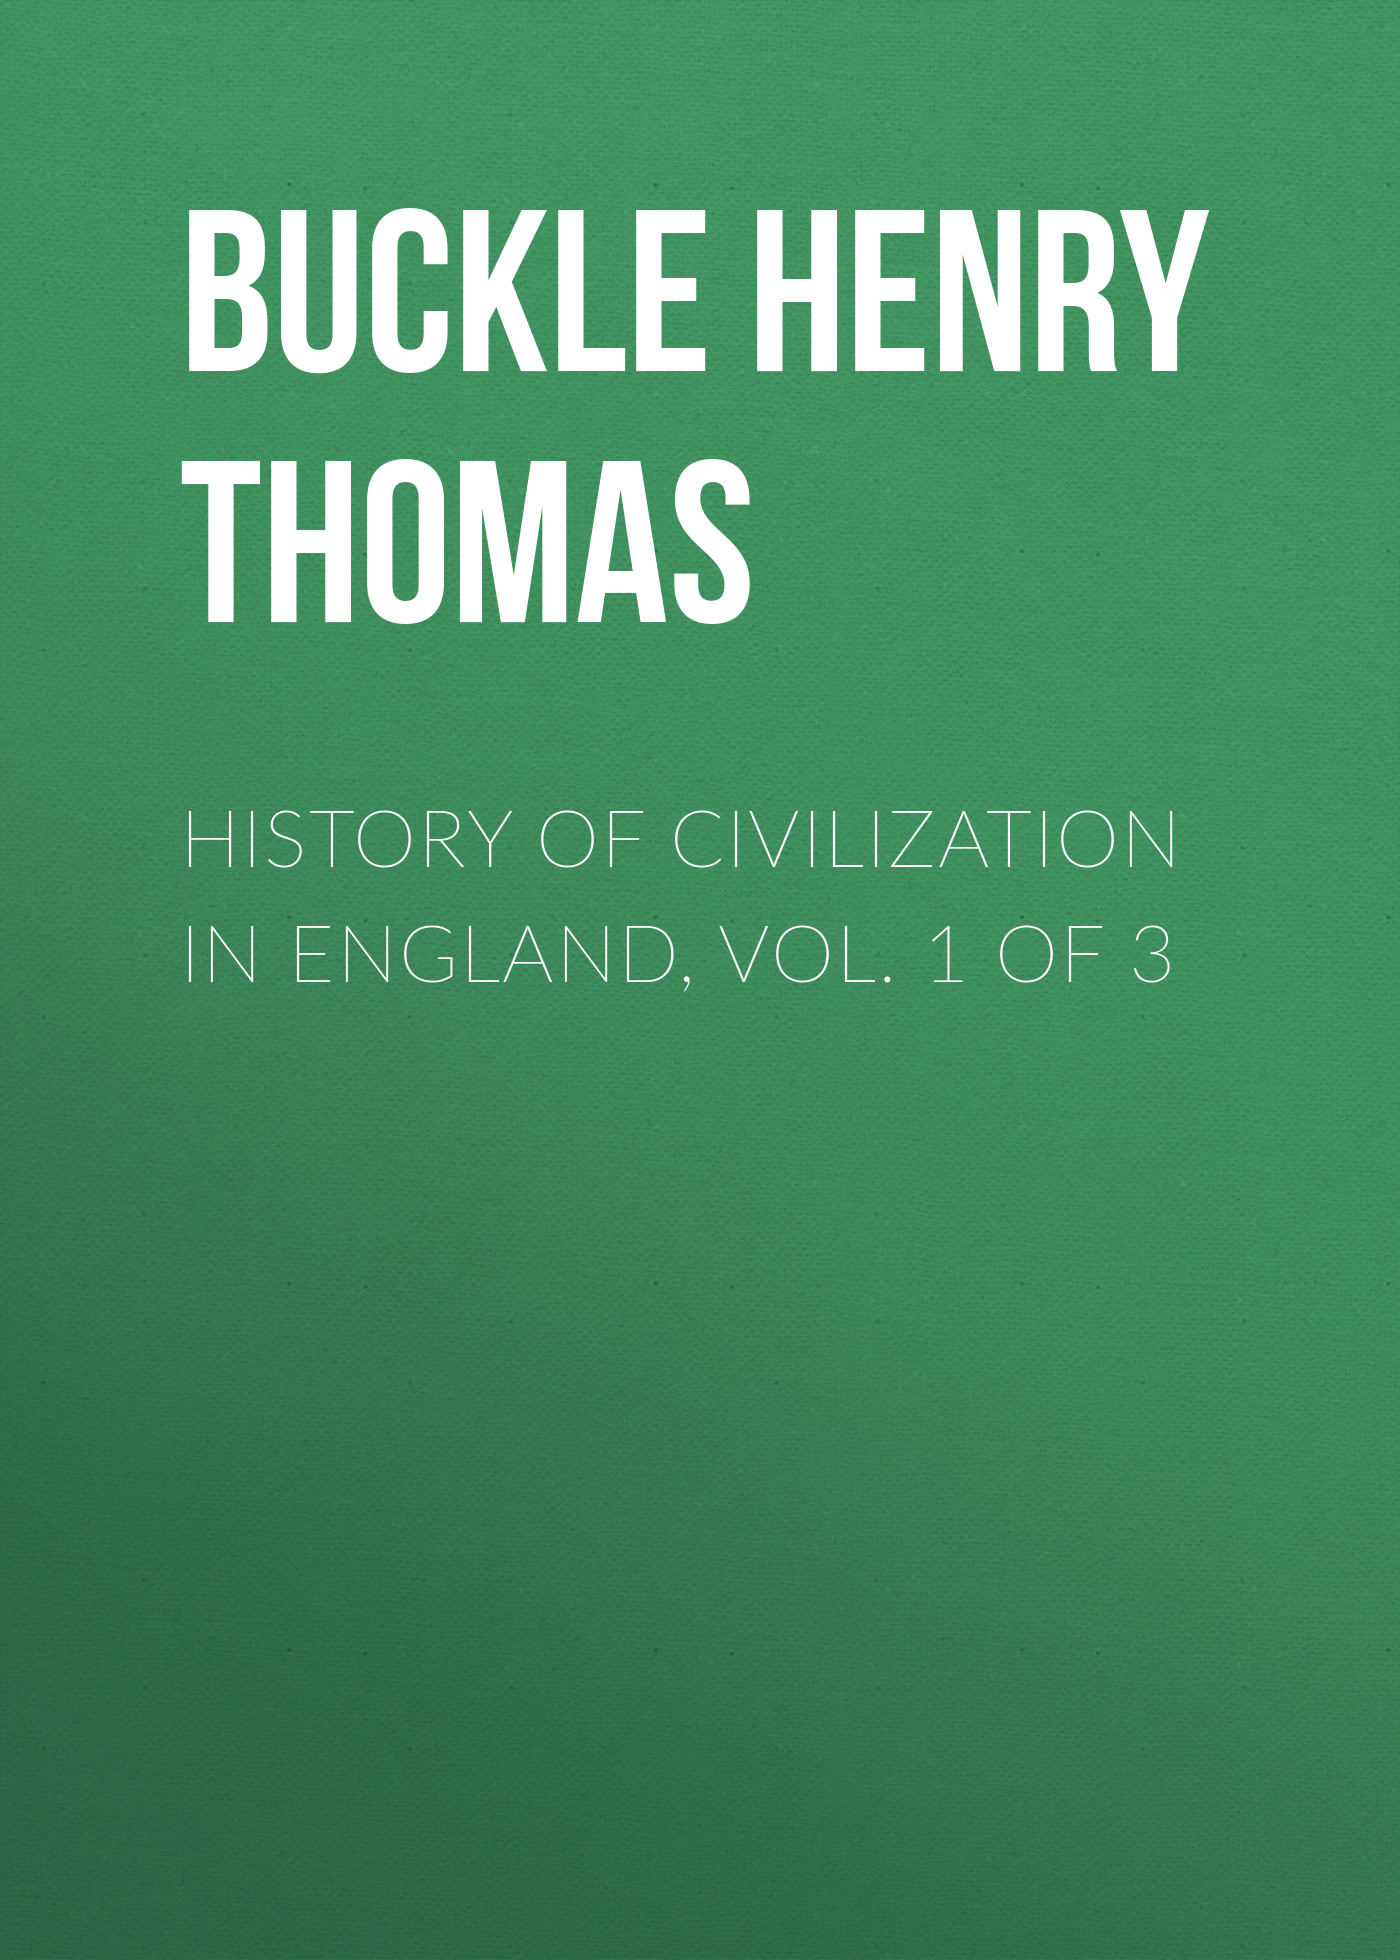 Buckle Henry Thomas History of Civilization in England, Vol. 1 of 3 thomas frognall dibdin bibliotheca spenceriana vol 1